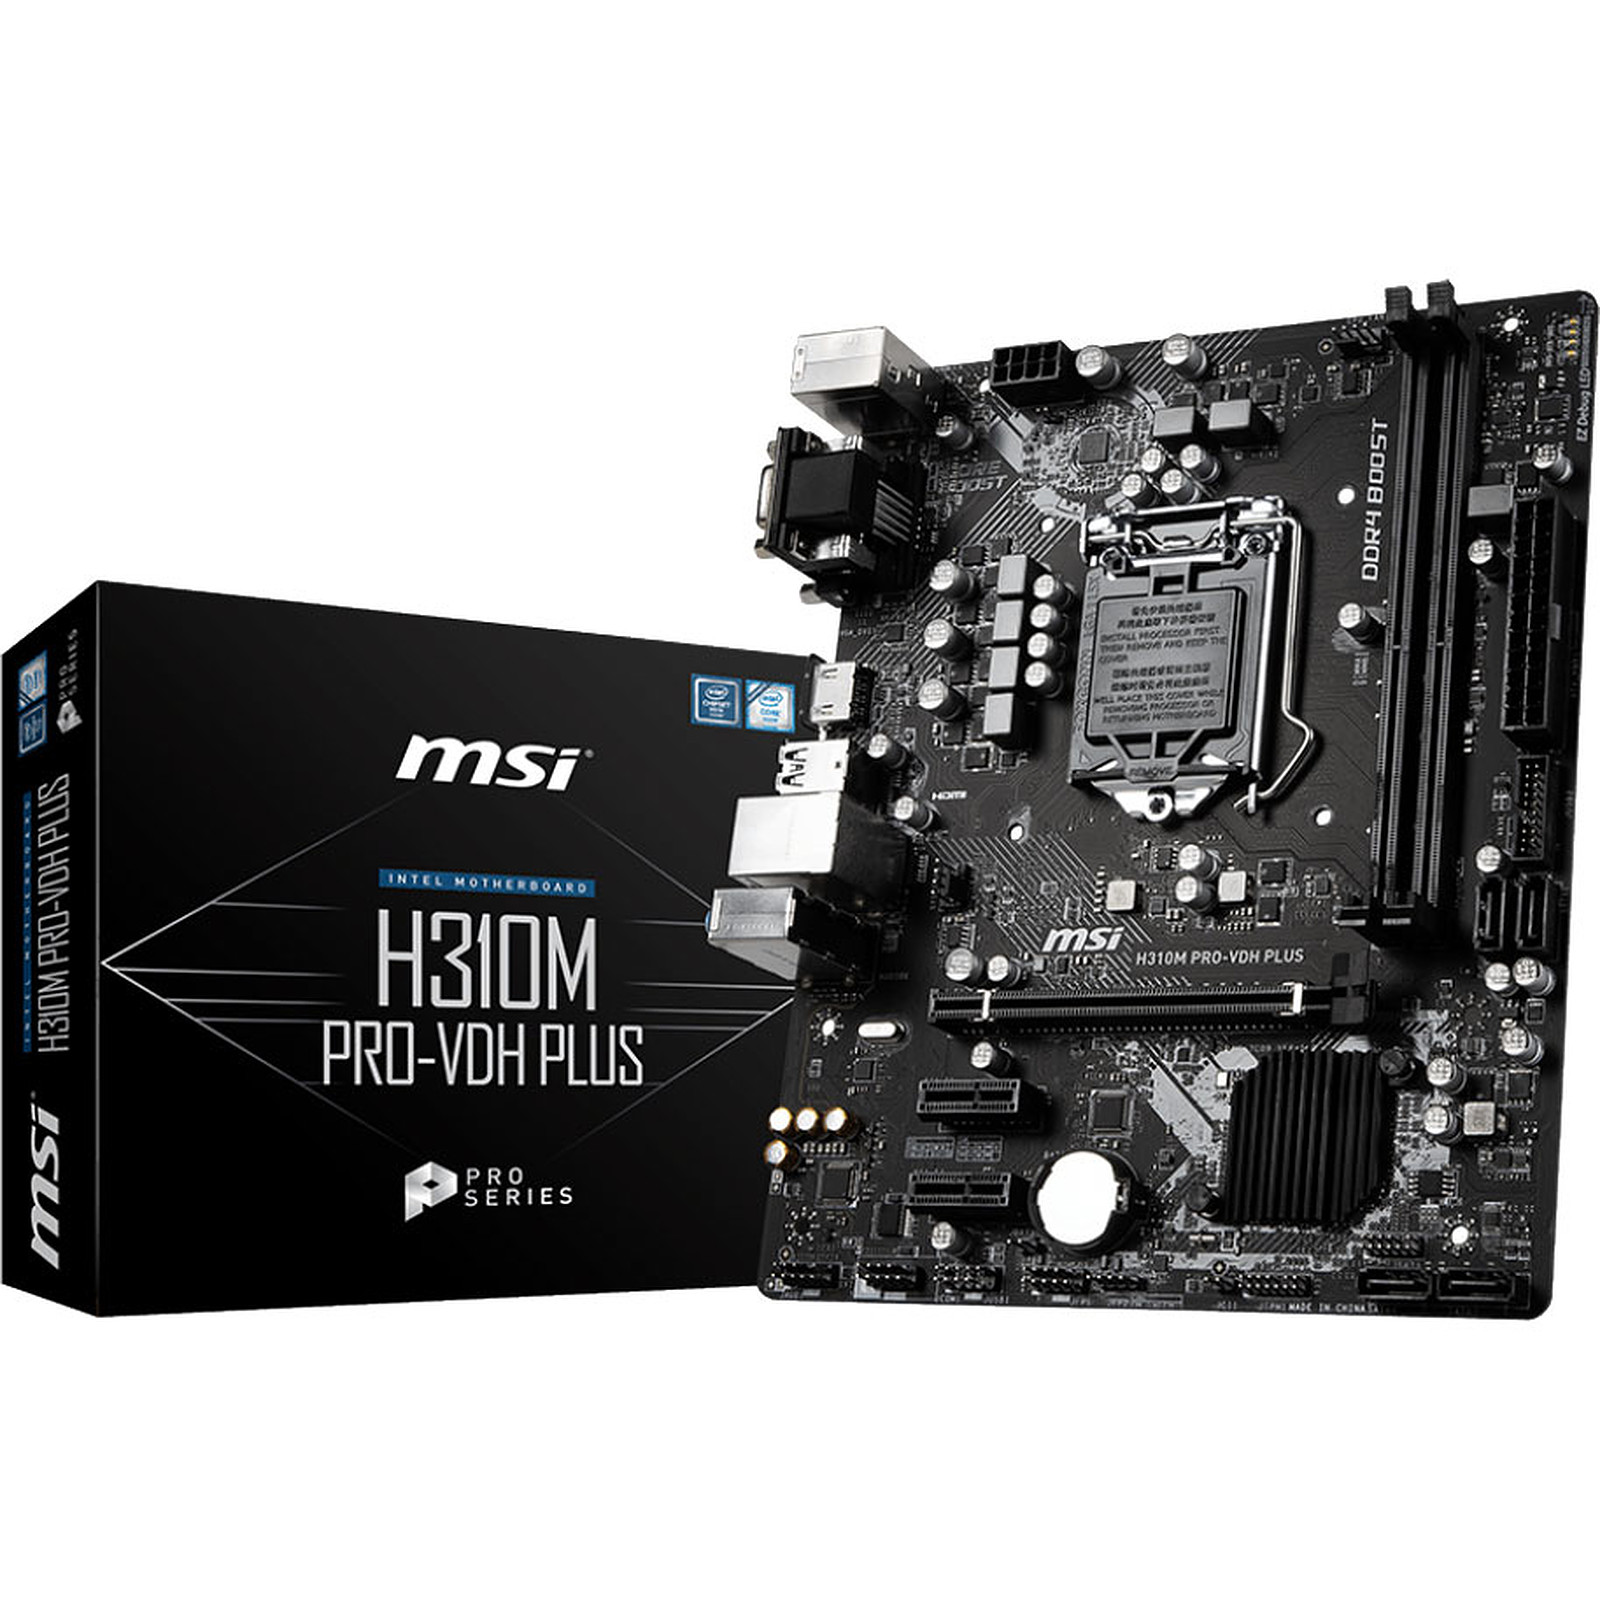 Carte mère MSI H310M PRO-VDH PLUS Socket 1151 (Intel H310 Express) mATX, informatique ile de la Réunion 974